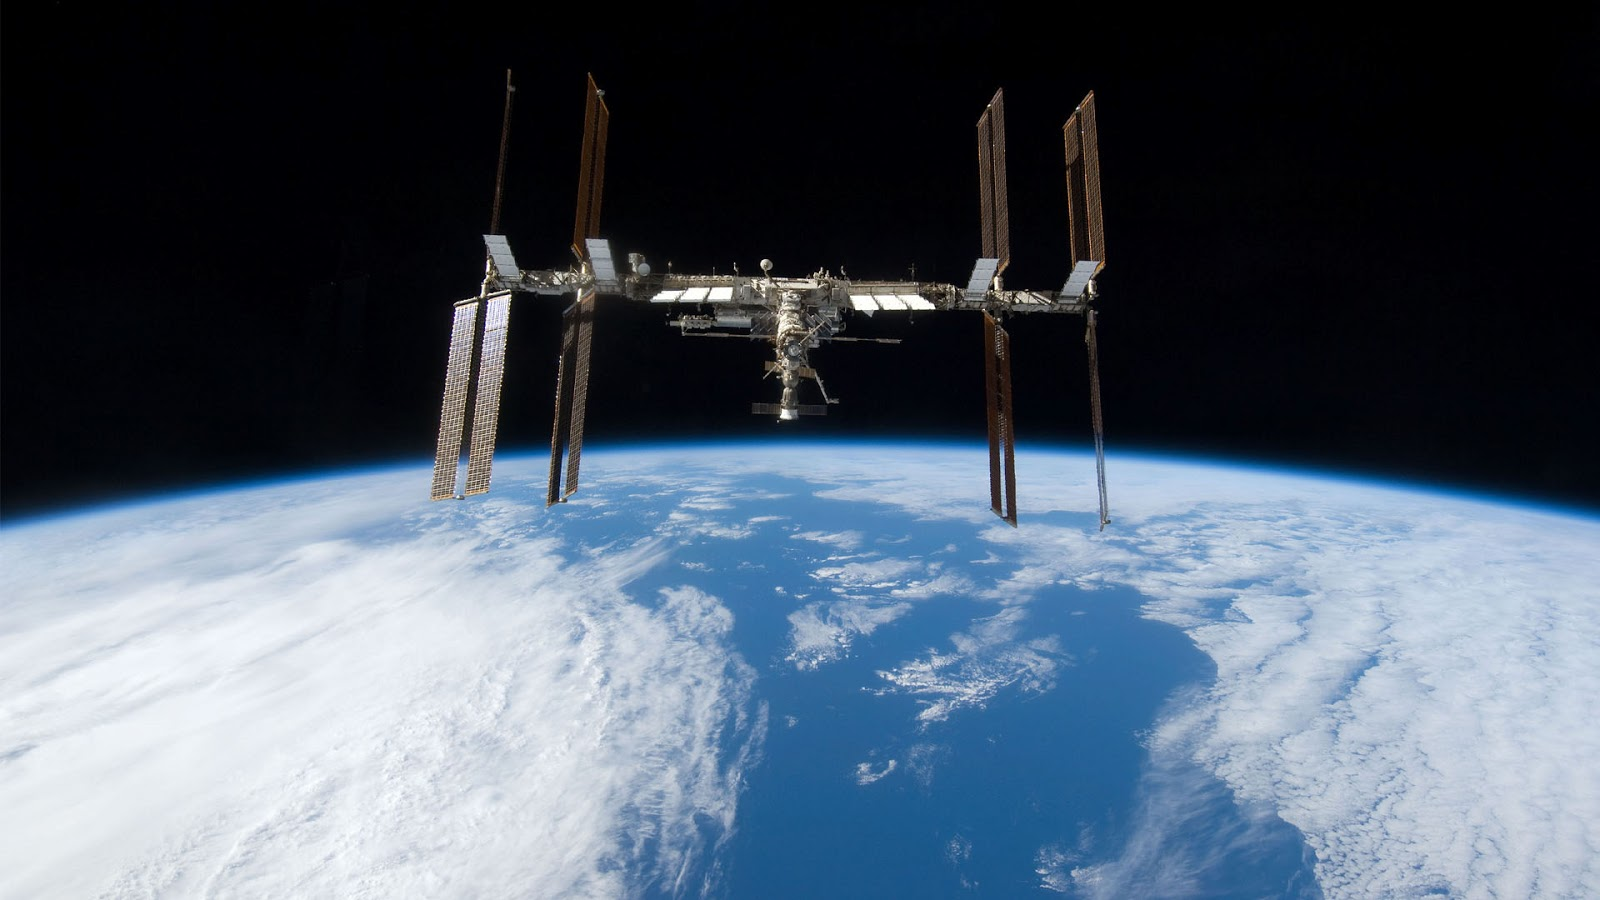 International Space Station Hd Wallpapers 1080p Hd